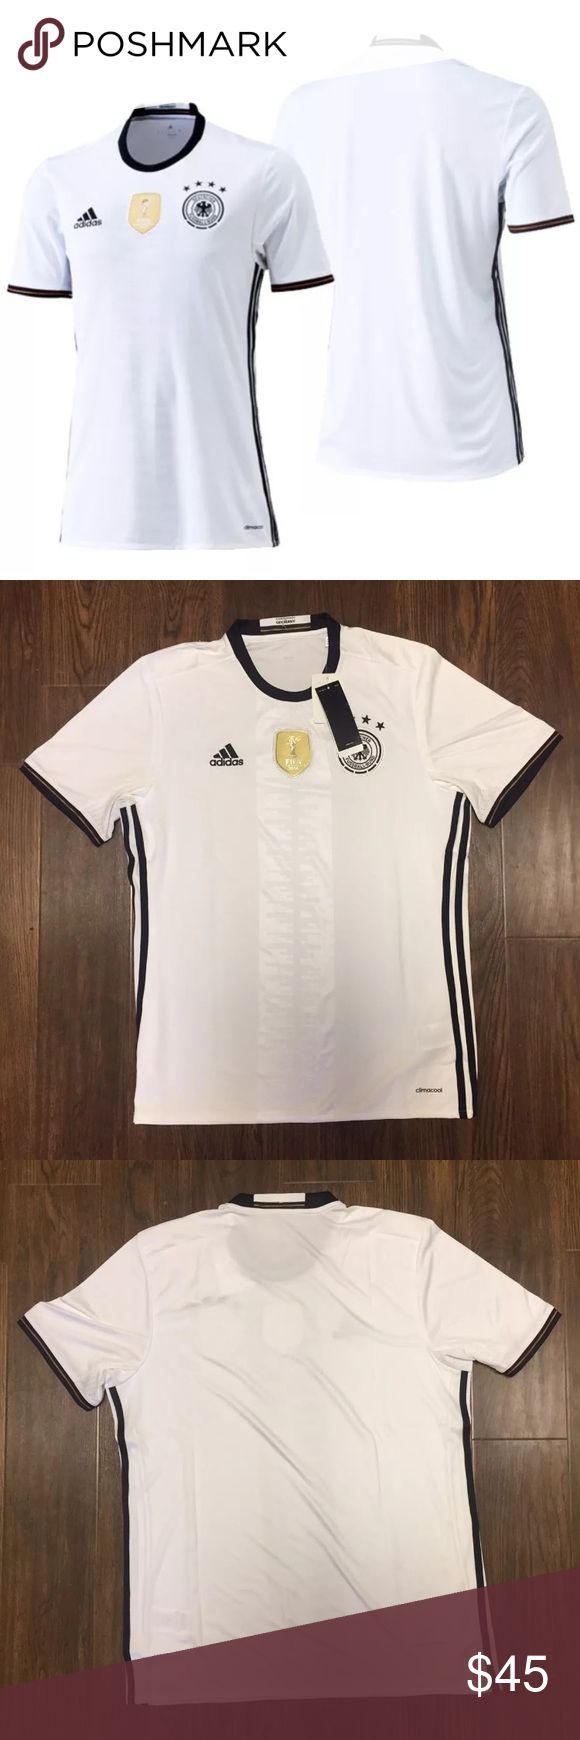 Adidas 2016-17 World Cup Germany Soccer Jersey Material : 100% Polyester   Climacool technology   Mesh ventilation inserts   Rubbed crewneck with German flag on back collar   Adidas logo embroidered on black on upper right chest   Gold World Cup patch sti